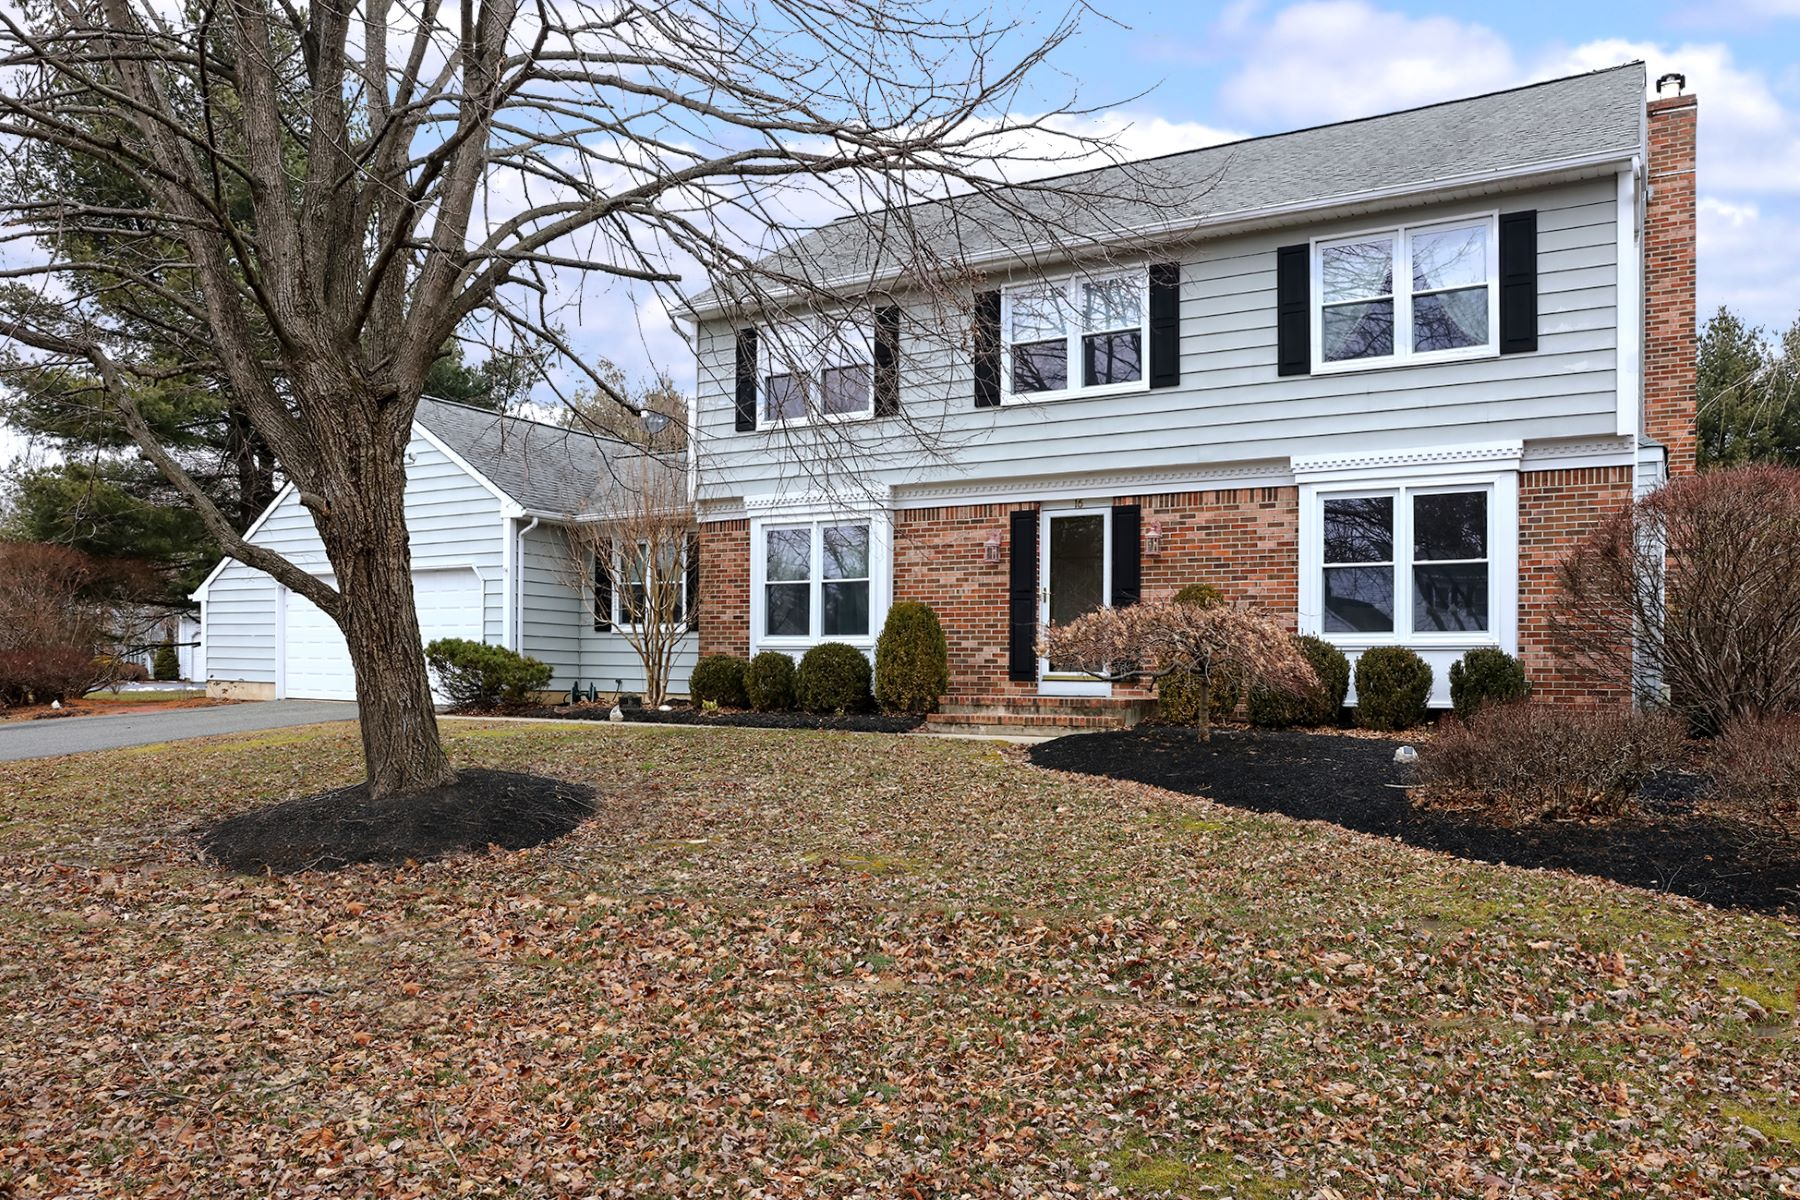 Maison unifamiliale pour l Vente à This One Fits the Bill 16 Greenfield Drive South, Princeton Junction, New Jersey 08850 États-UnisDans/Autour: West Windsor Twp